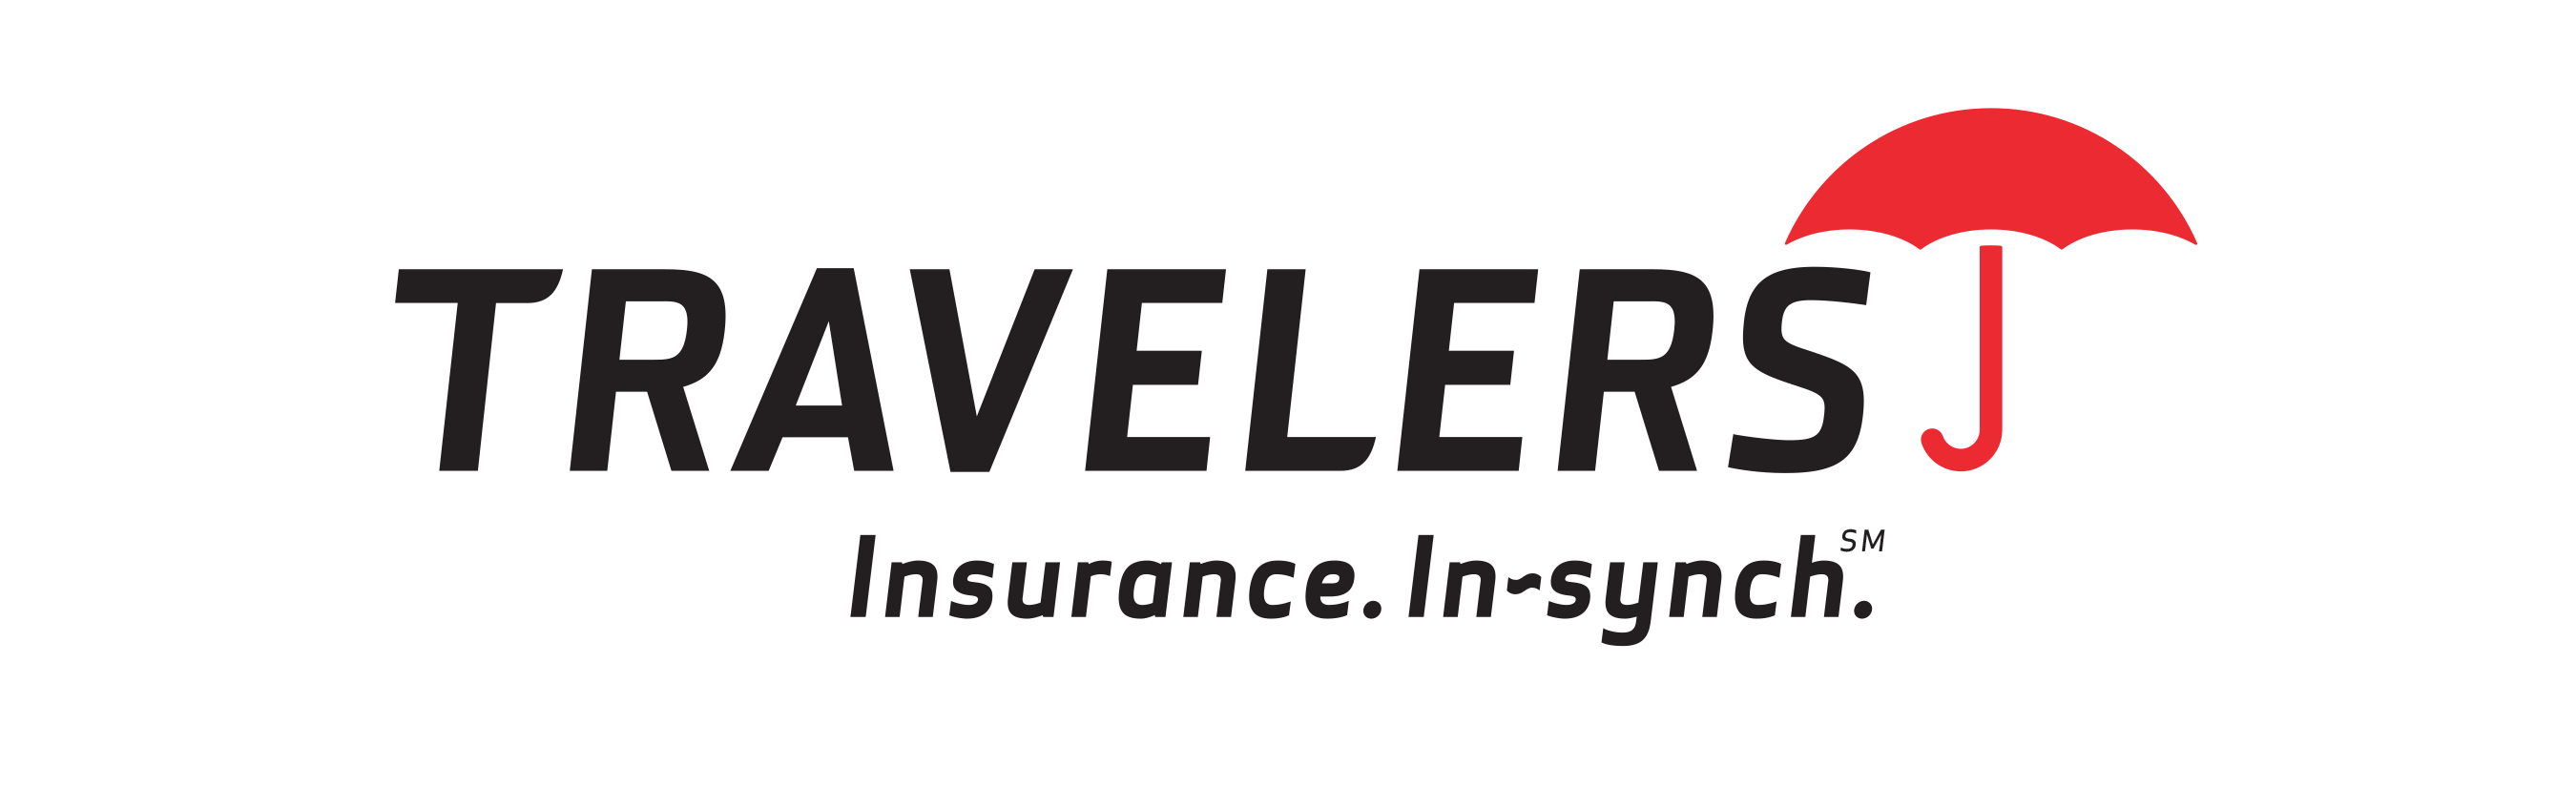 travelers insurance customer service number 866 596 5311